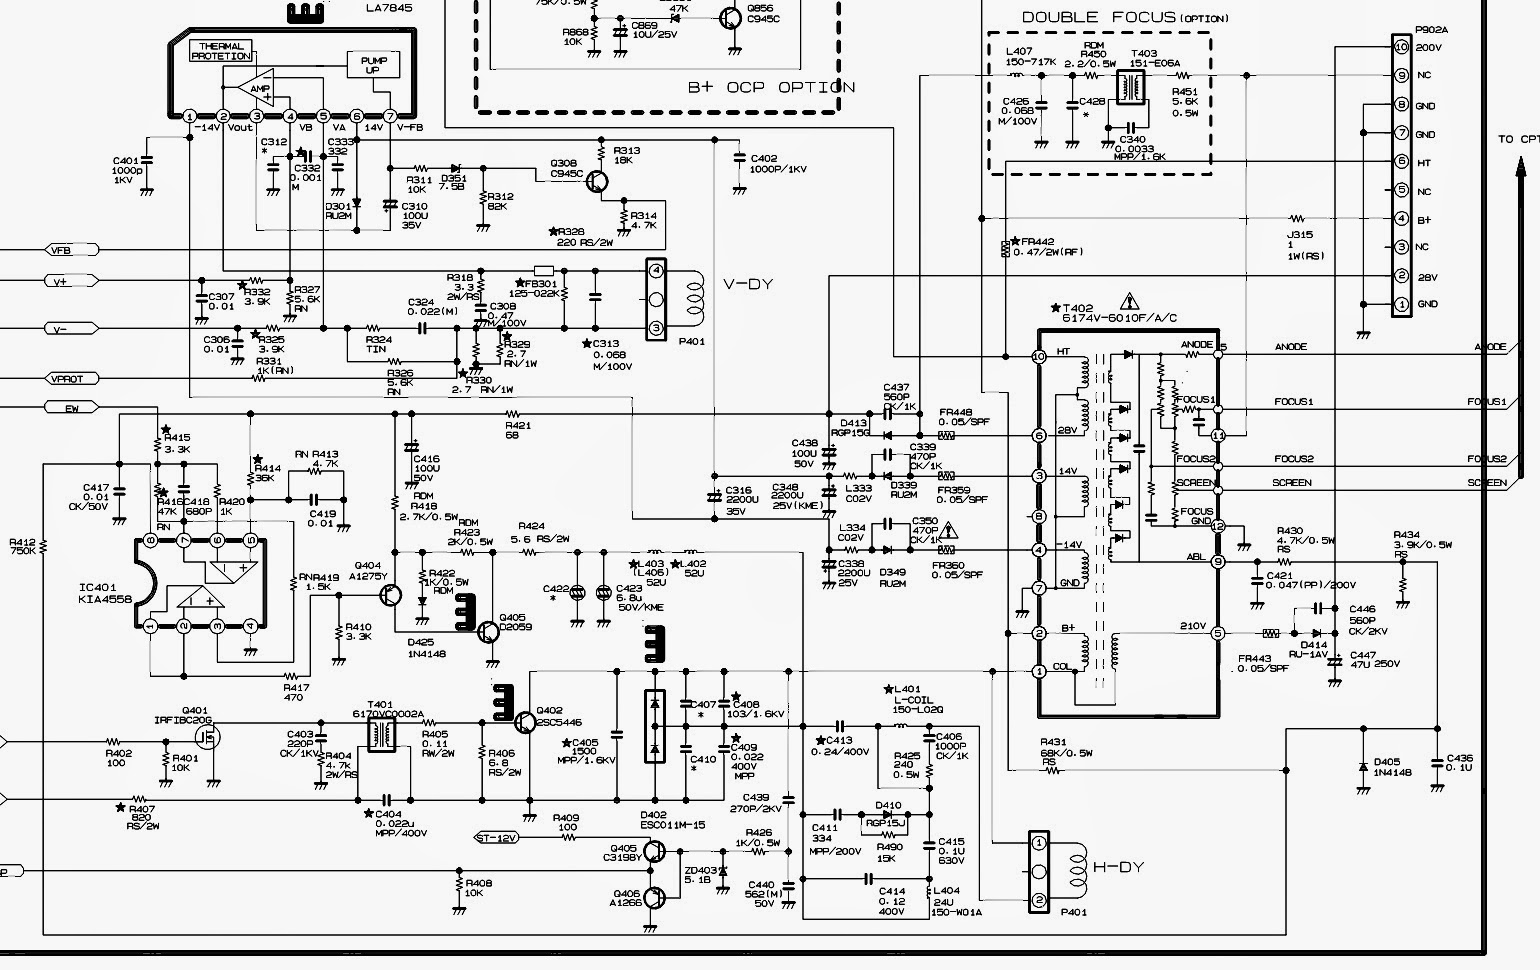 small resolution of sony tv wiring diagram wiring library sony xplod 52wx4 wiring diagram sony tv wiring diagram